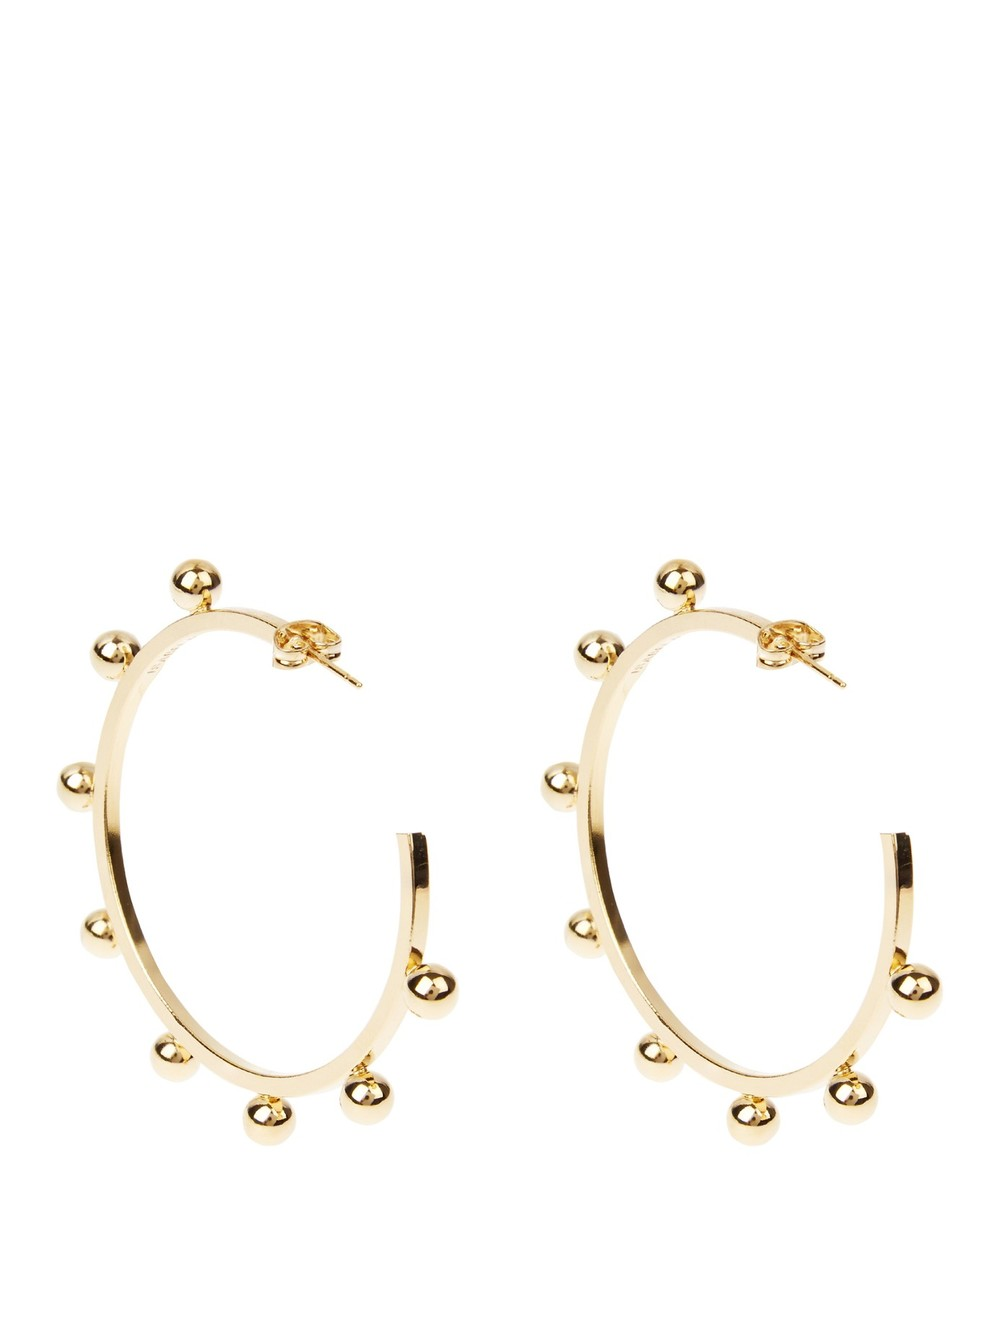 Isabel Marant: Stud-embellished Hoops was $245, now $171